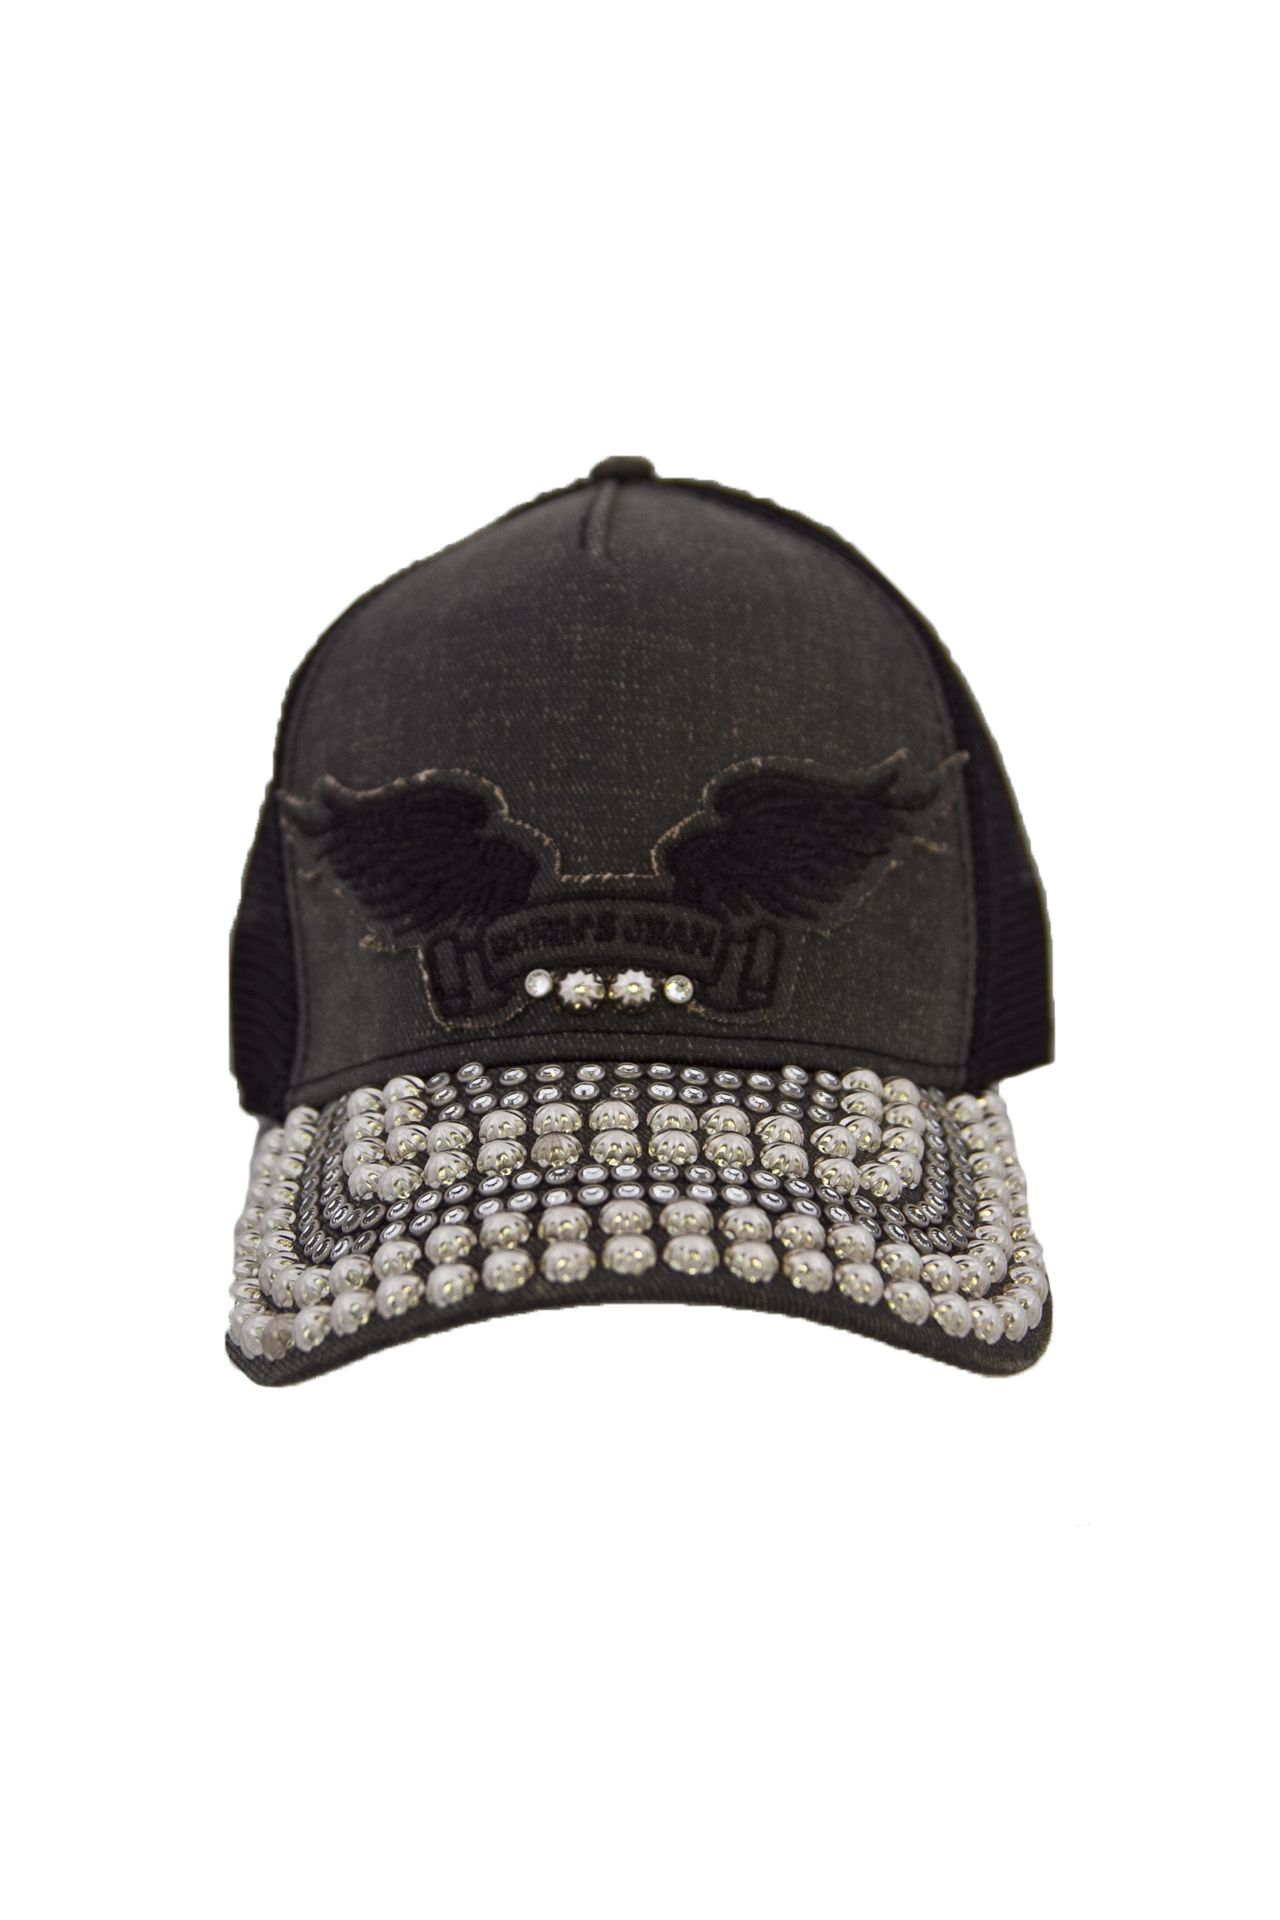 BLACK COATING TWILL CAP STUDS AND CRYSTALS